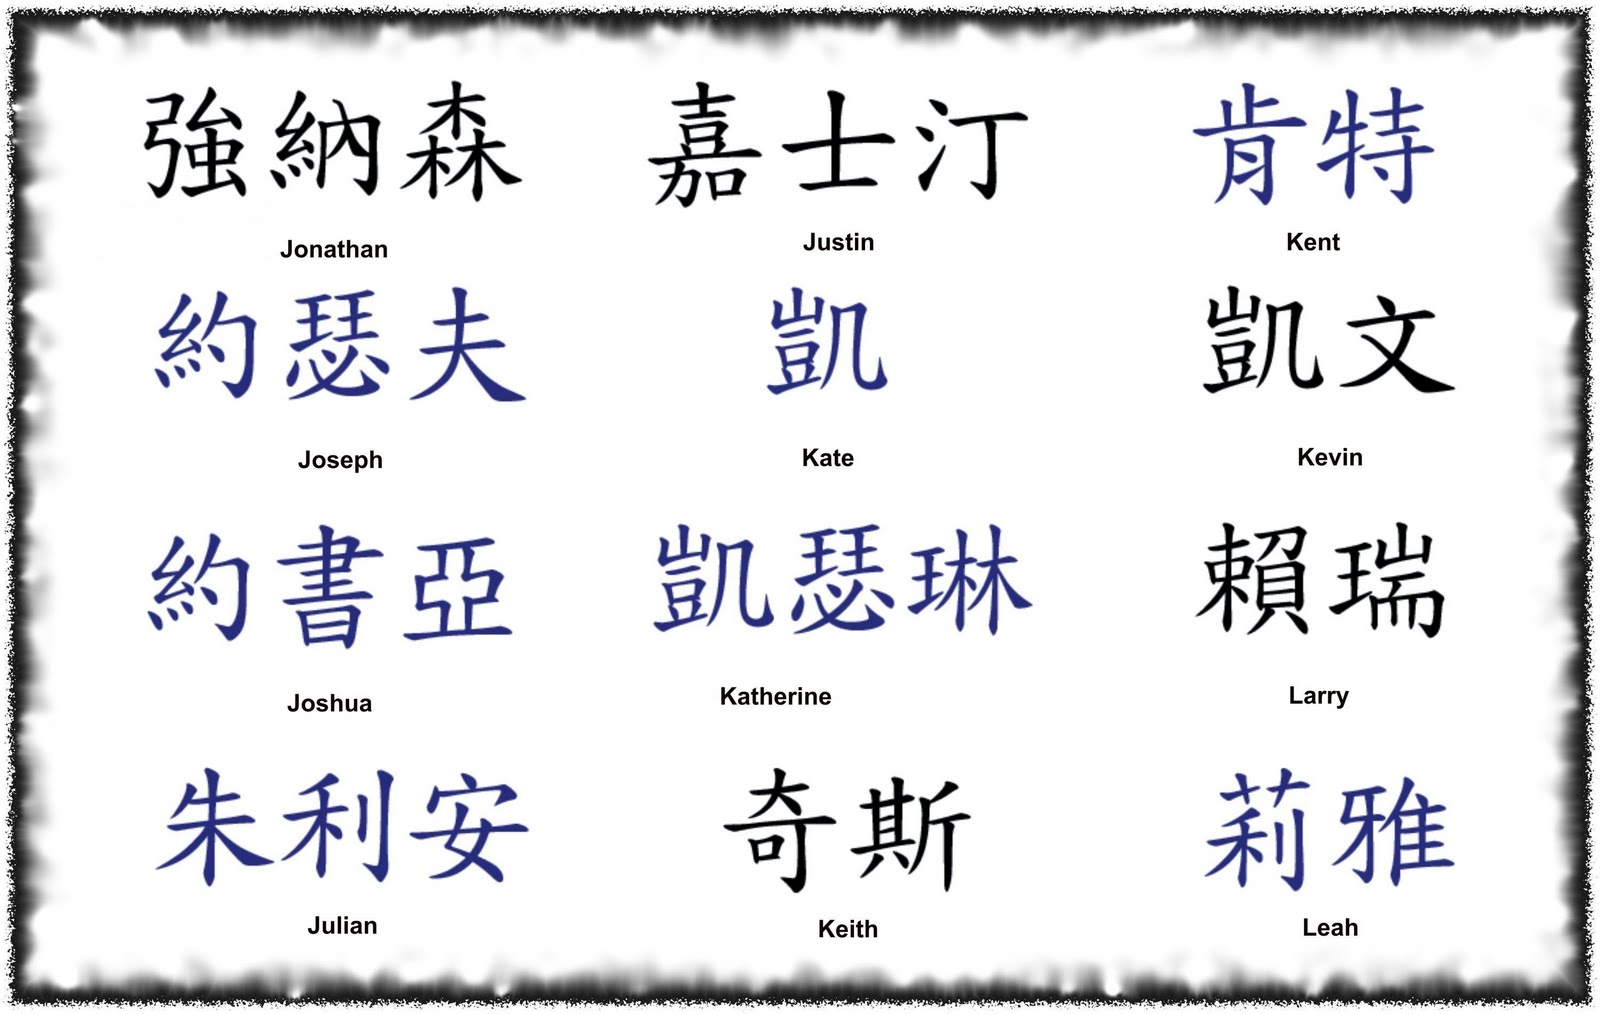 Paul Chinese Symbols, Pronunciation, and Pin Yin - Learn to Write and Say Your Name in Chinese